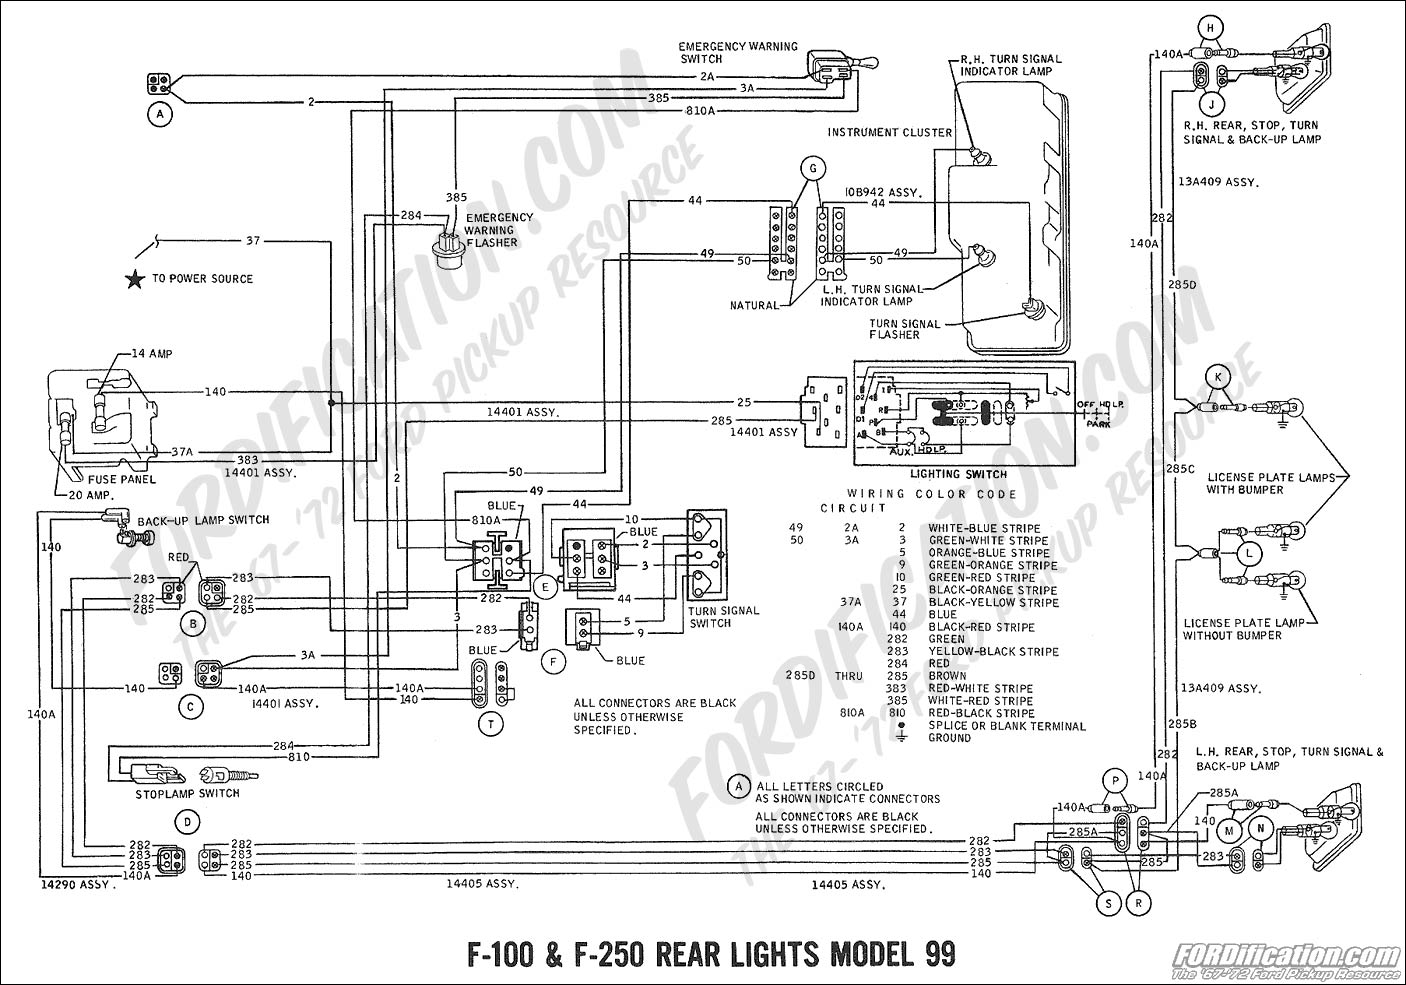 99 CIVIC WIRING DIAGRAM COURTESY LIGHTS L21935 on 99 explorer fuse box diagram